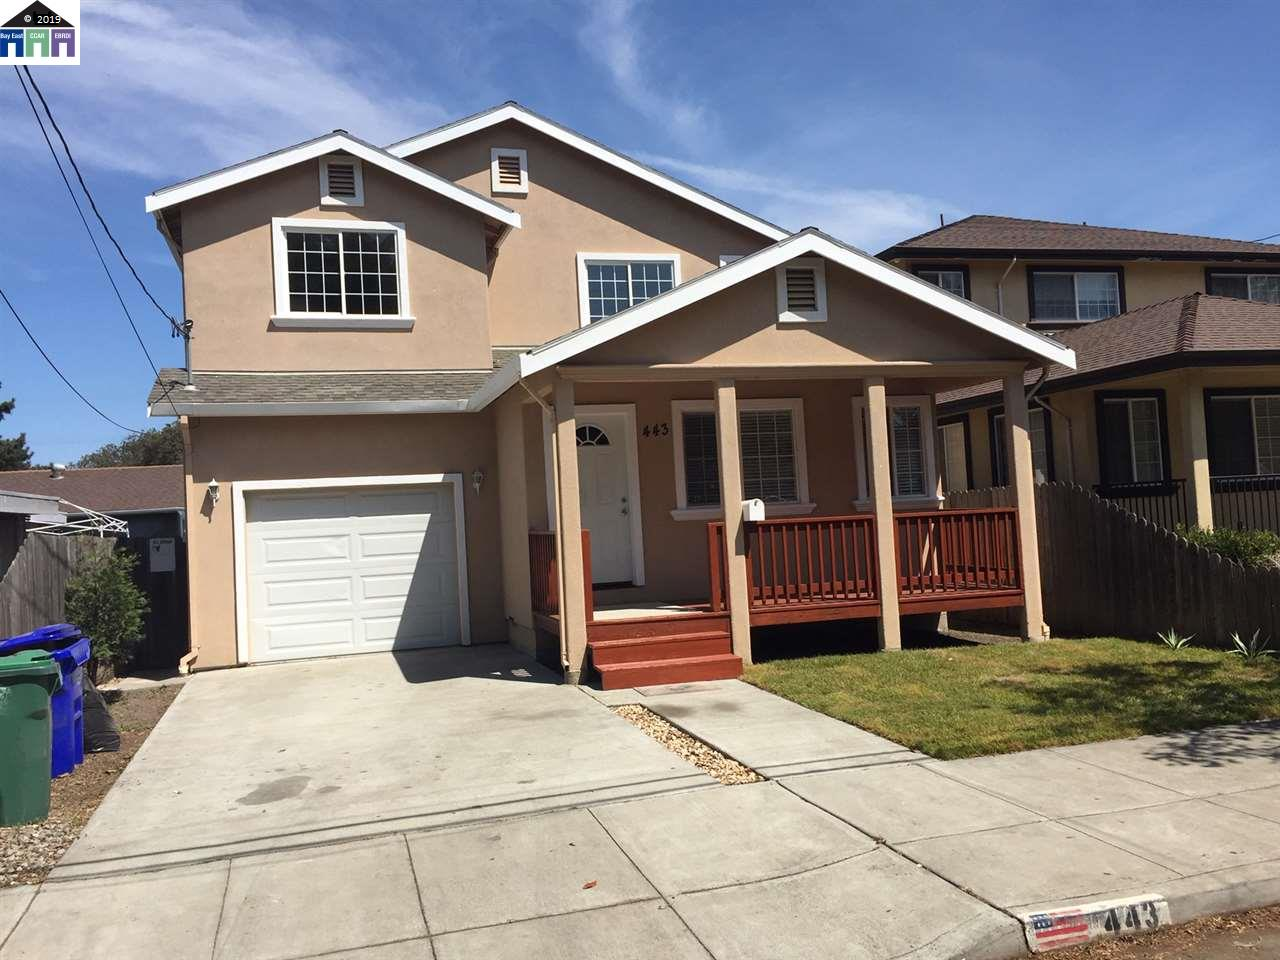 443 ALAMO AVE, RICHMOND, CA 94801